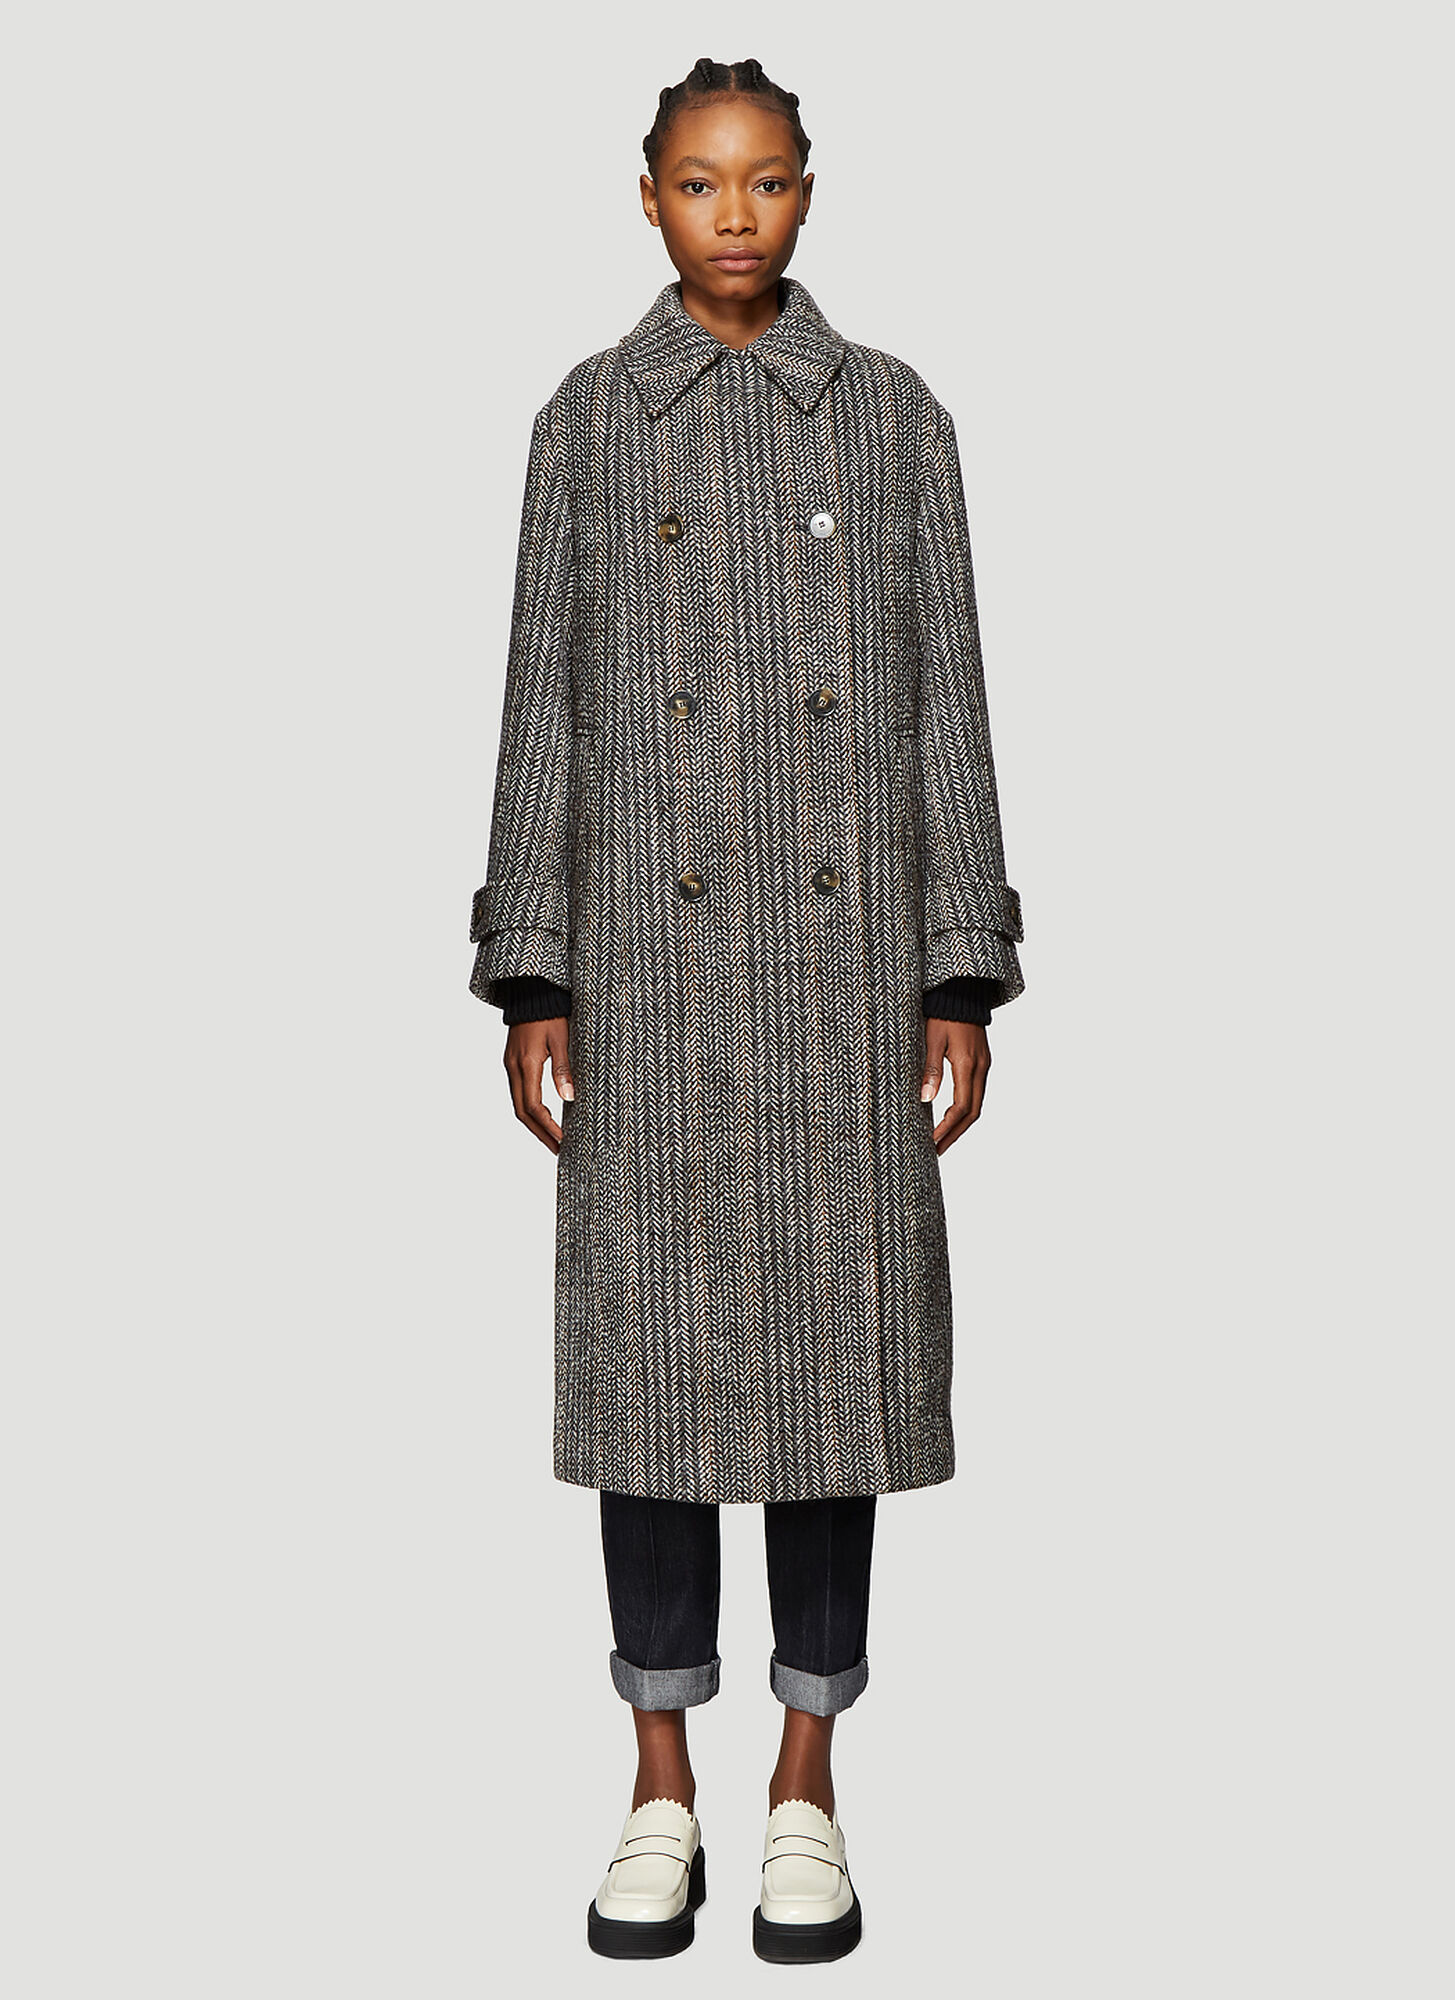 Photo of Stella McCartney Herringbone Tweed Coat in Grey - Stella McCartney Coats